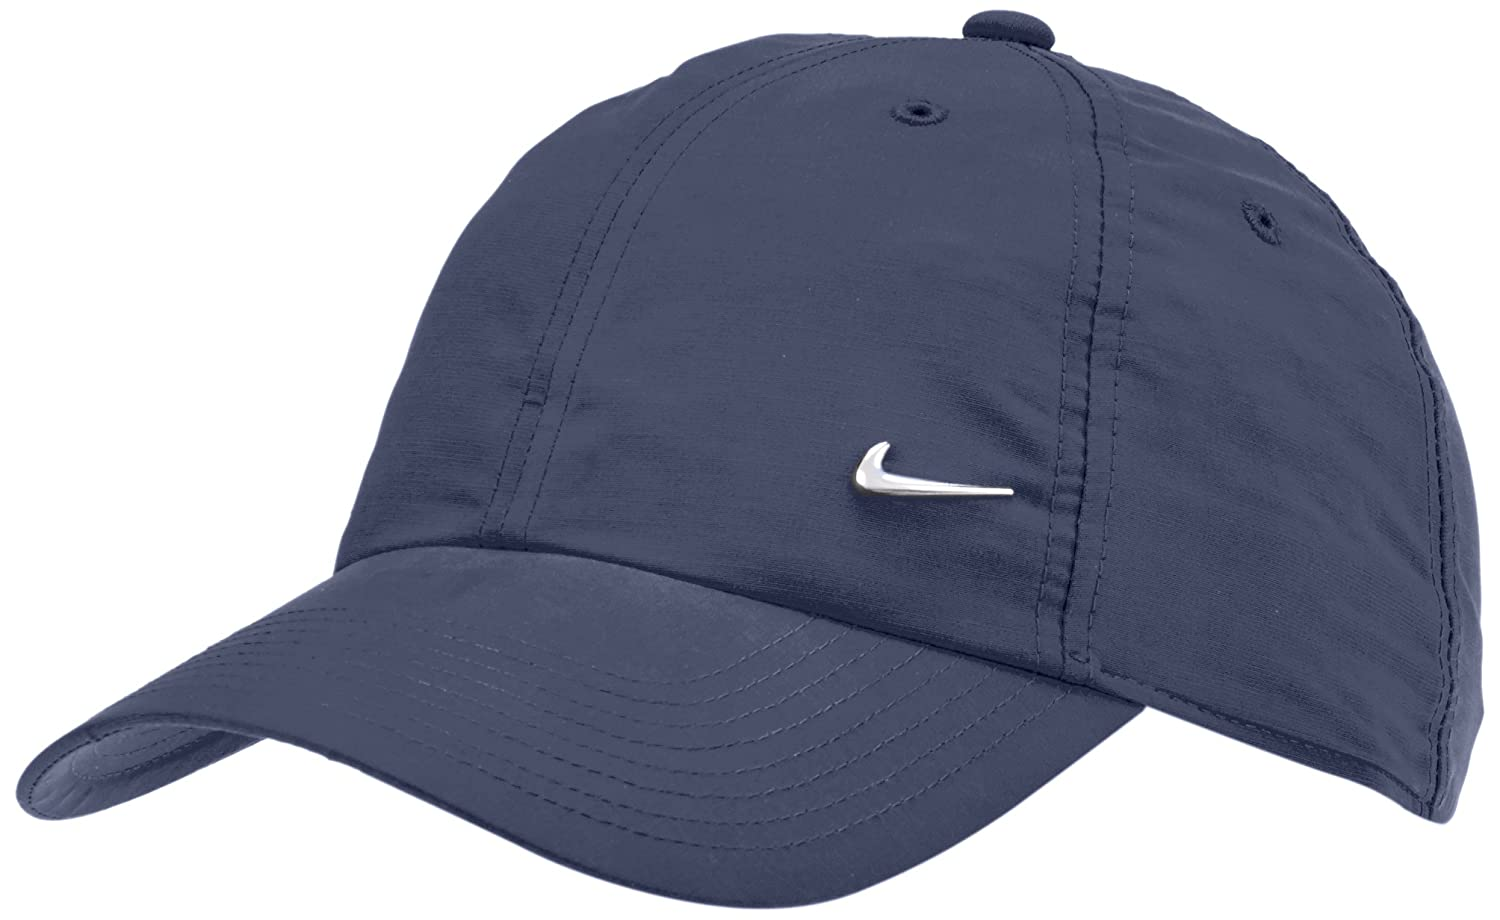 timeless design 06c0d 233fc NIKE Men s Metal Swoosh Cap Hat at Amazon Men s Clothing store